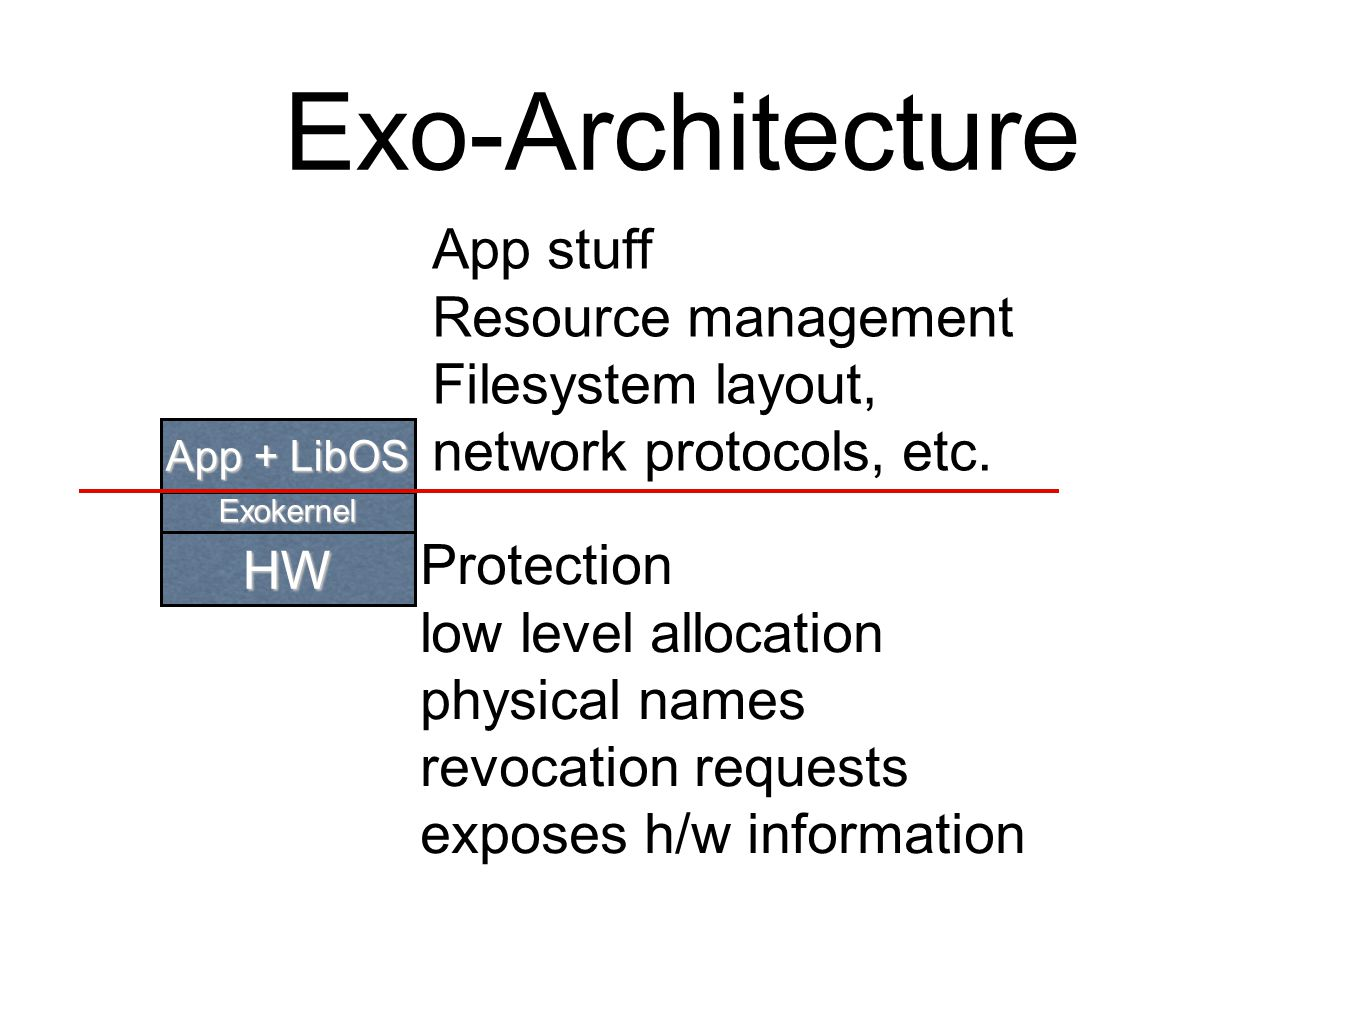 Exo-Architecture Exokernel HW App + LibOS Protection low level allocation physical names revocation requests exposes h/w information App stuff Resource management Filesystem layout, network protocols, etc.